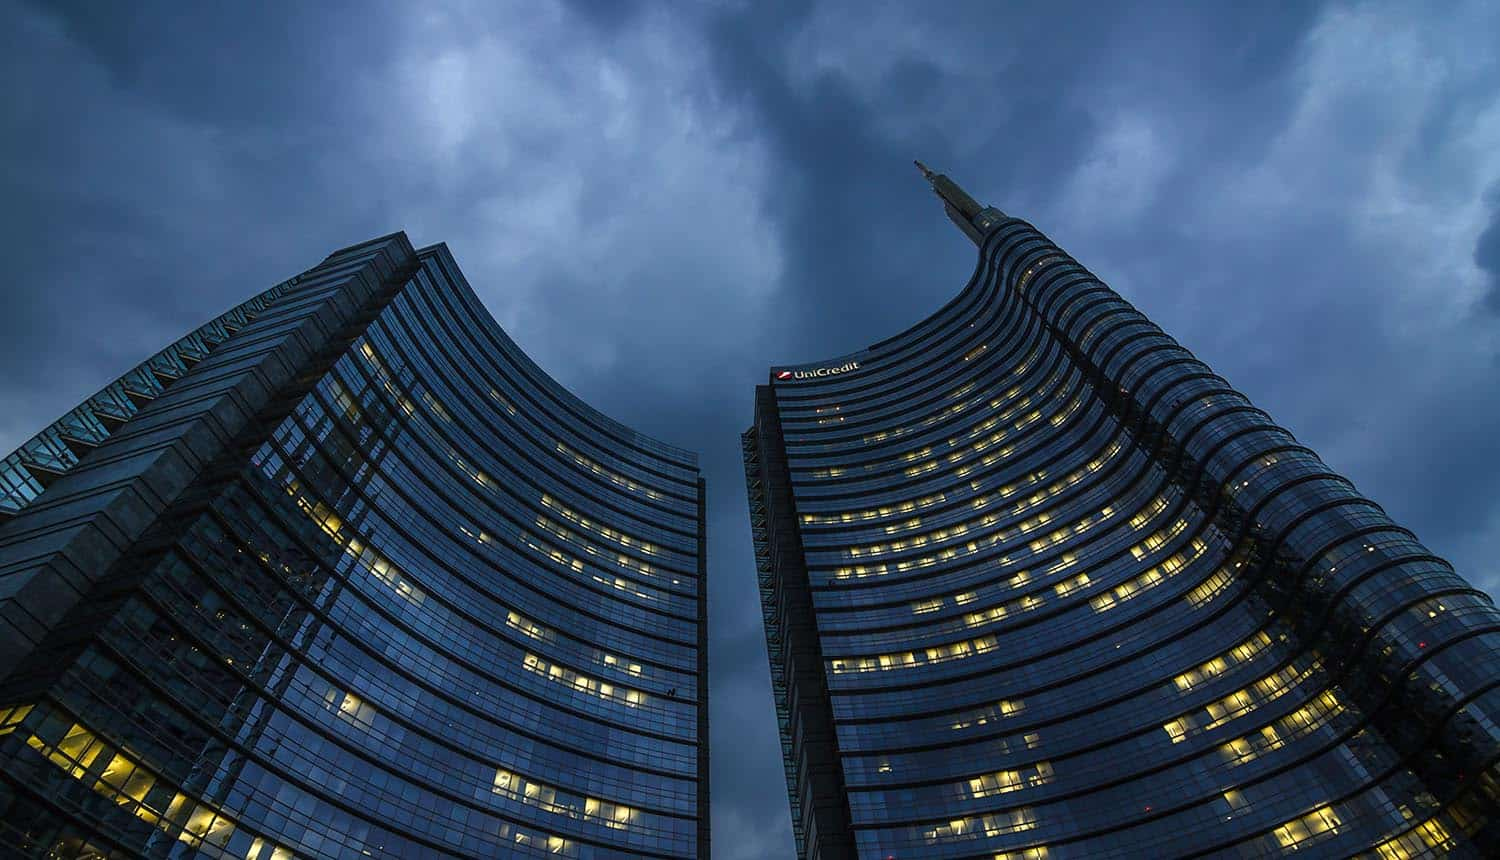 Modern building of Unicredit tower in new Porta Nuova business district showing Android malware and banking trojan